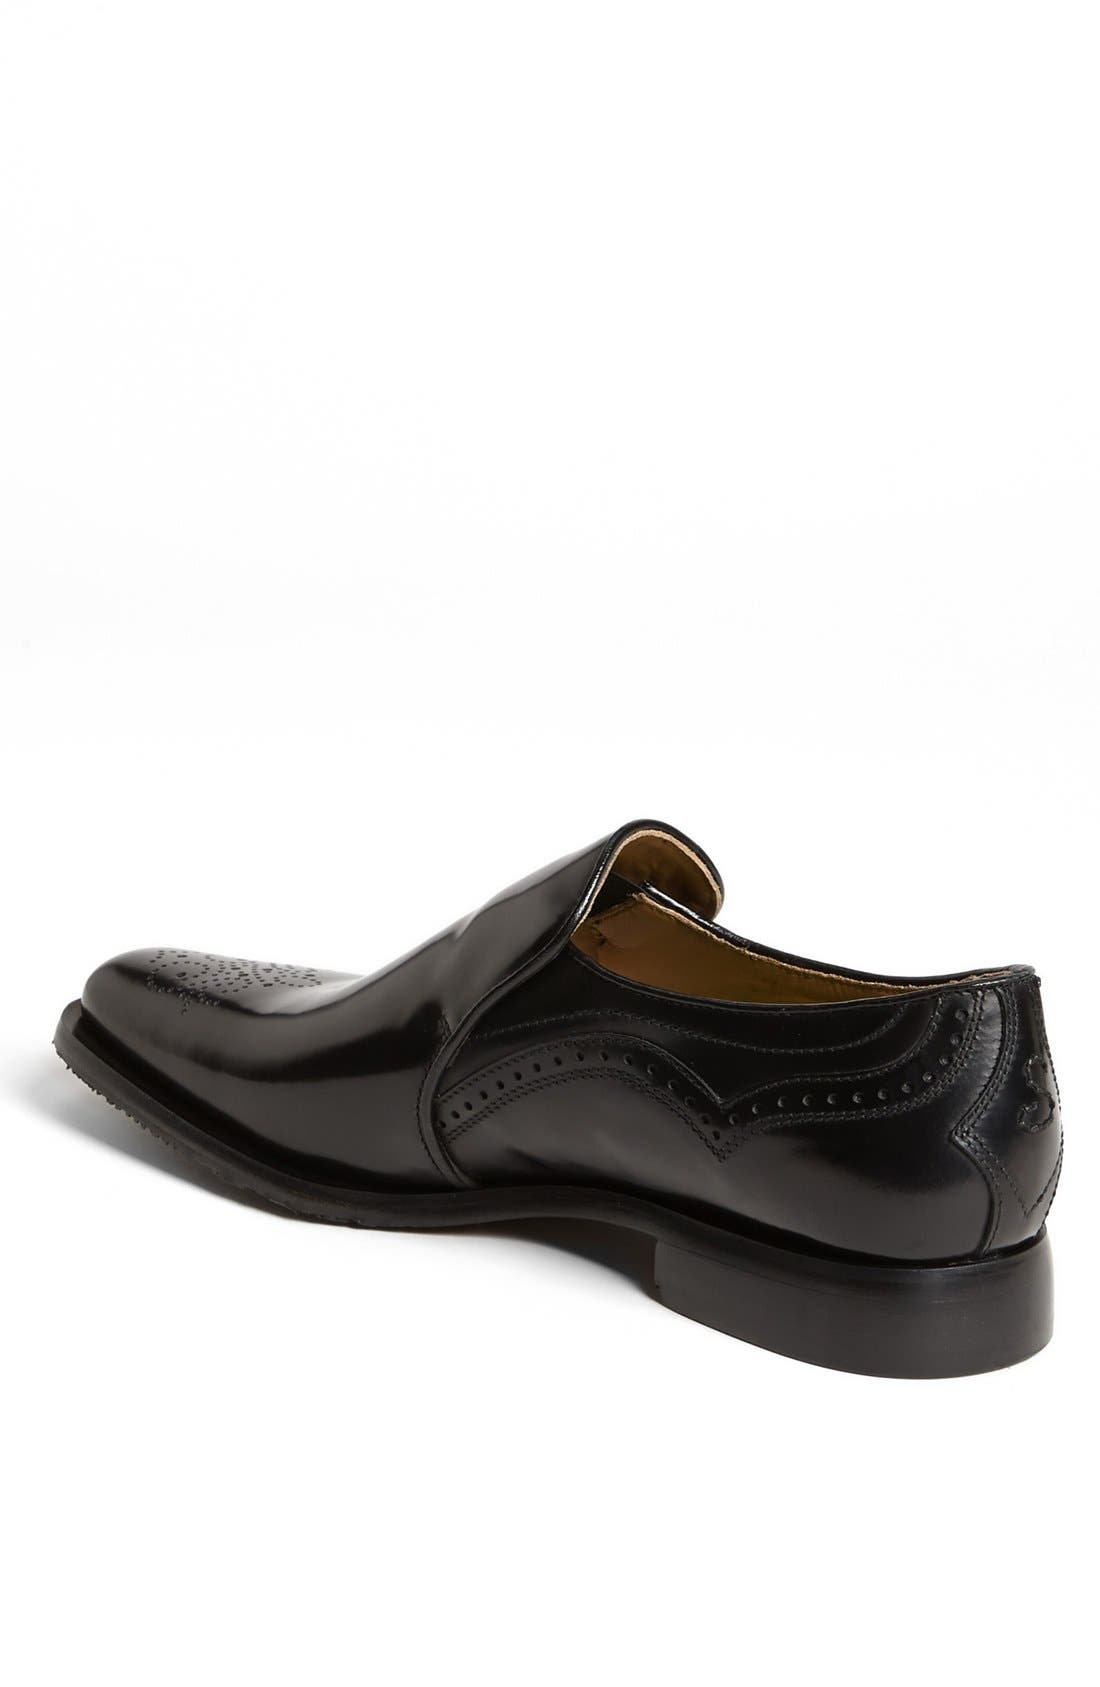 Alternate Image 2  - Oliver Sweeney 'Ofano' Medallion Toe Loafer